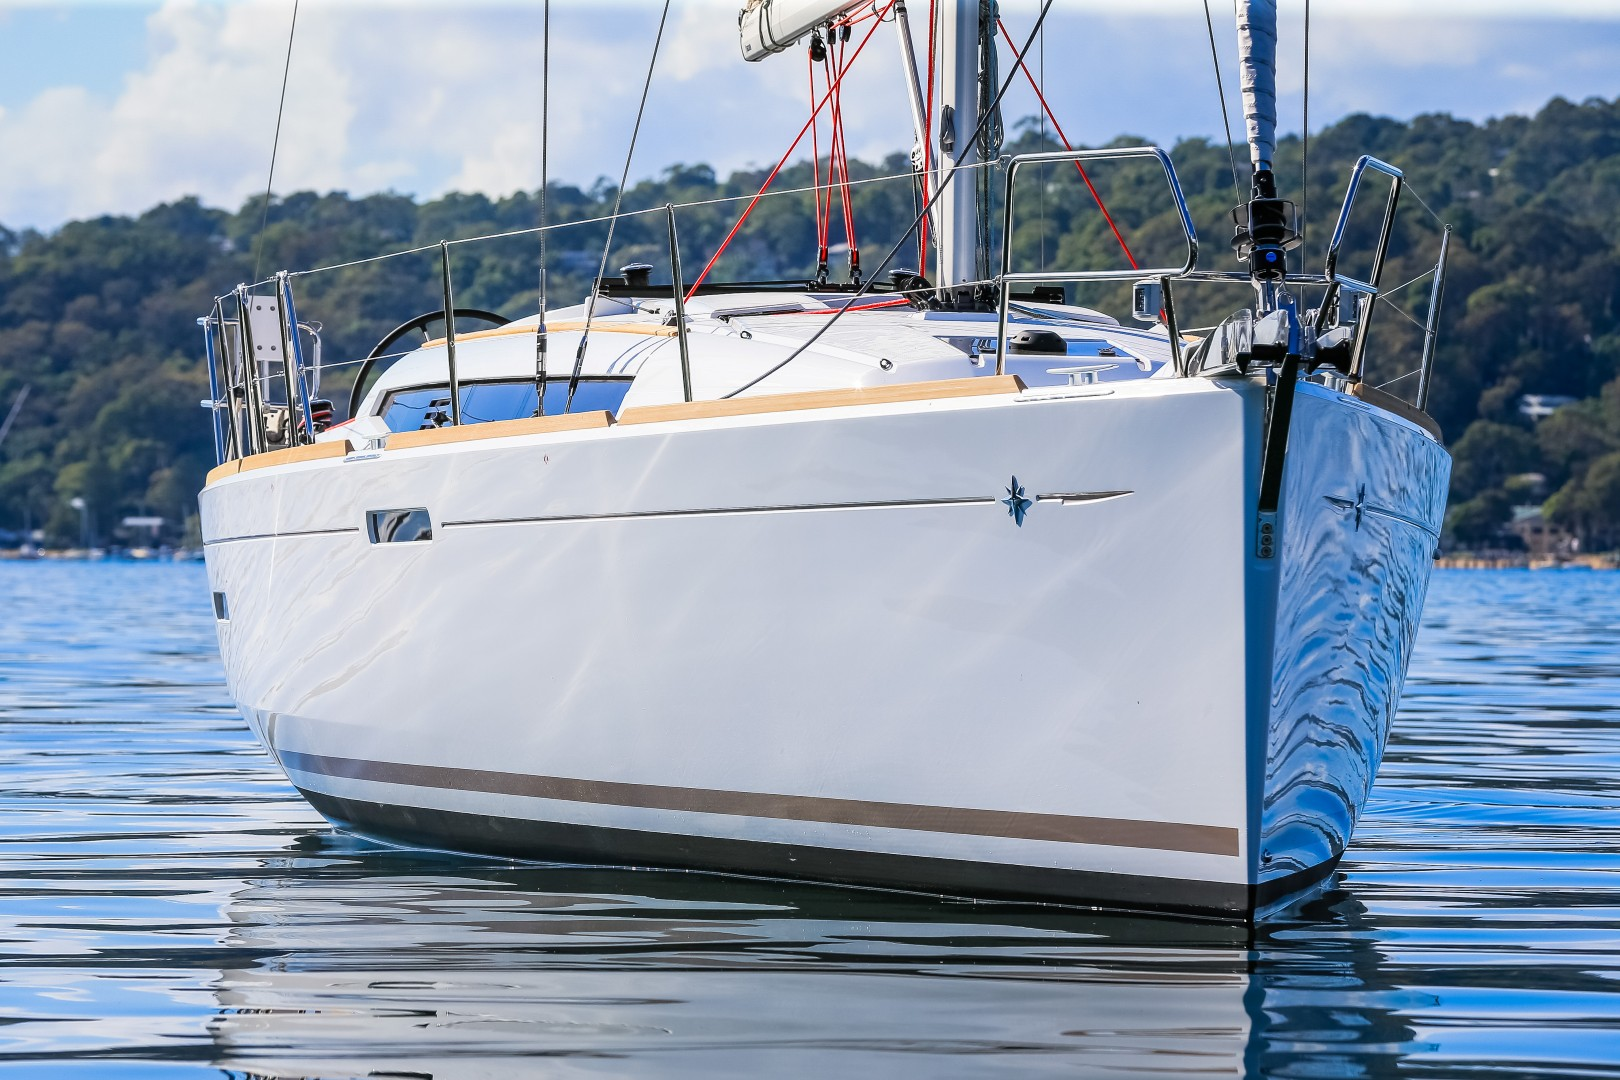 Jeanneau 389. Picture Craig Greenhill/ Saltwater Images